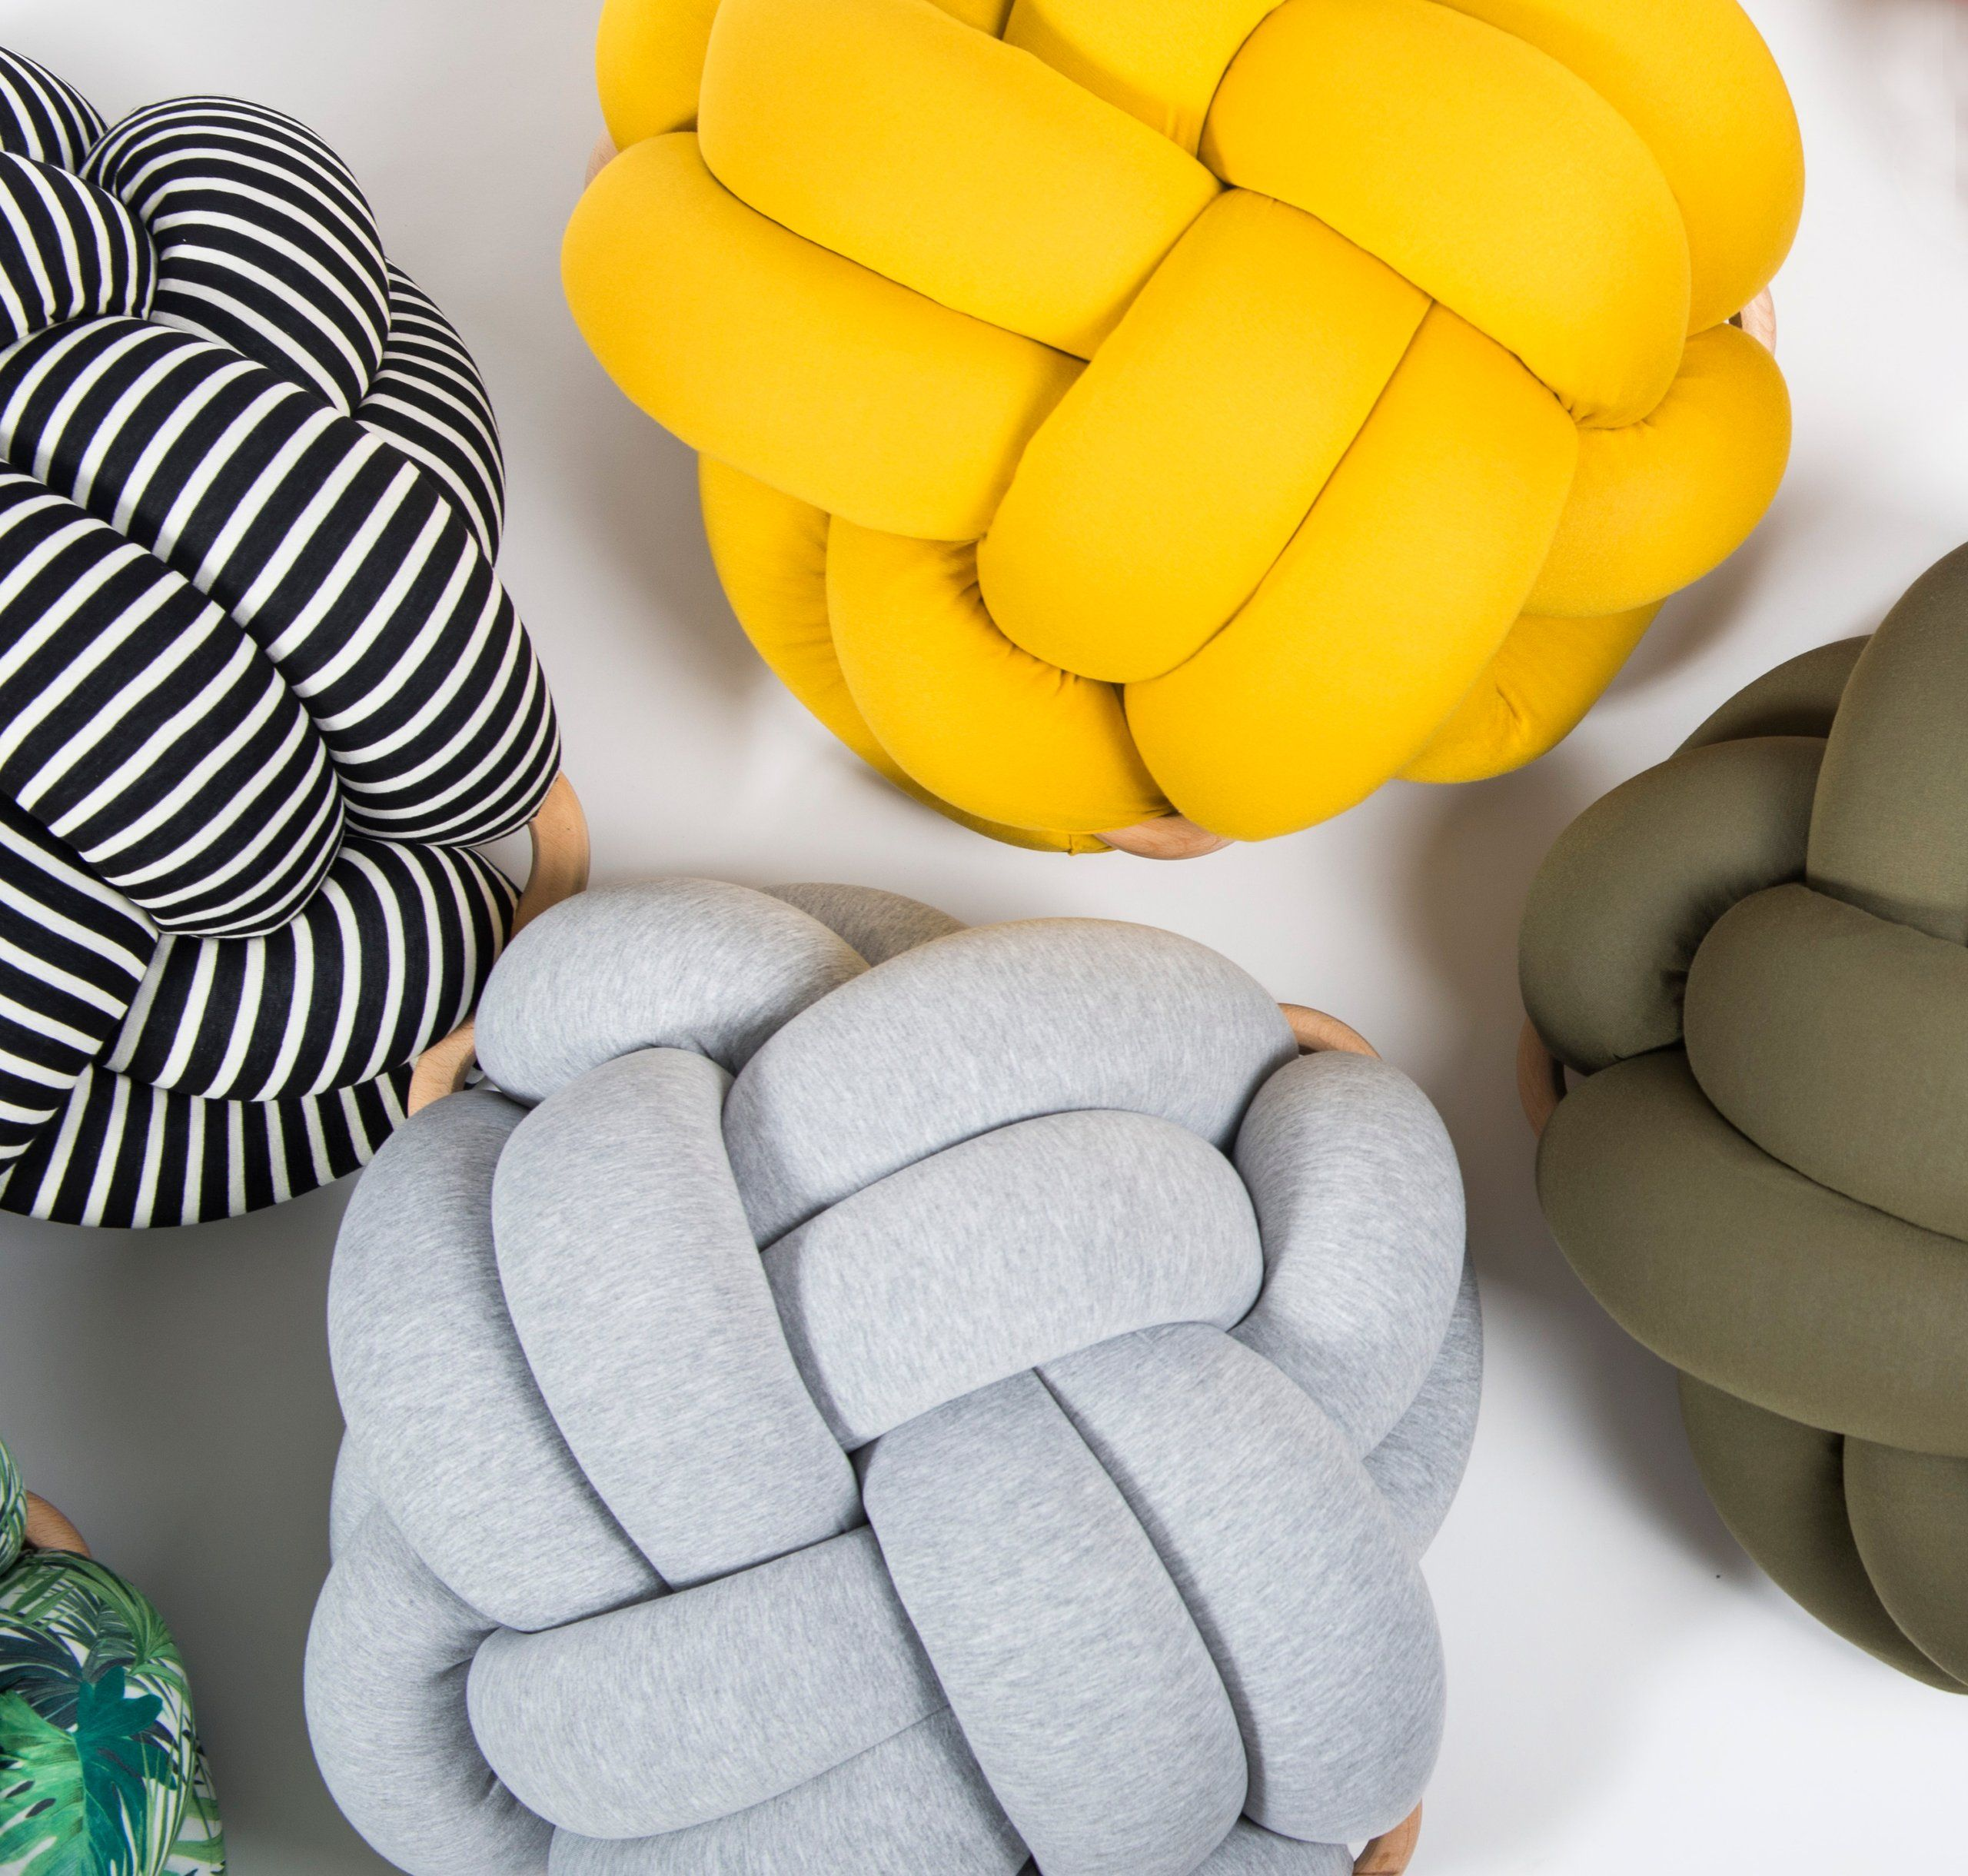 Knots studio knots studio pinterest studio knot pillow and